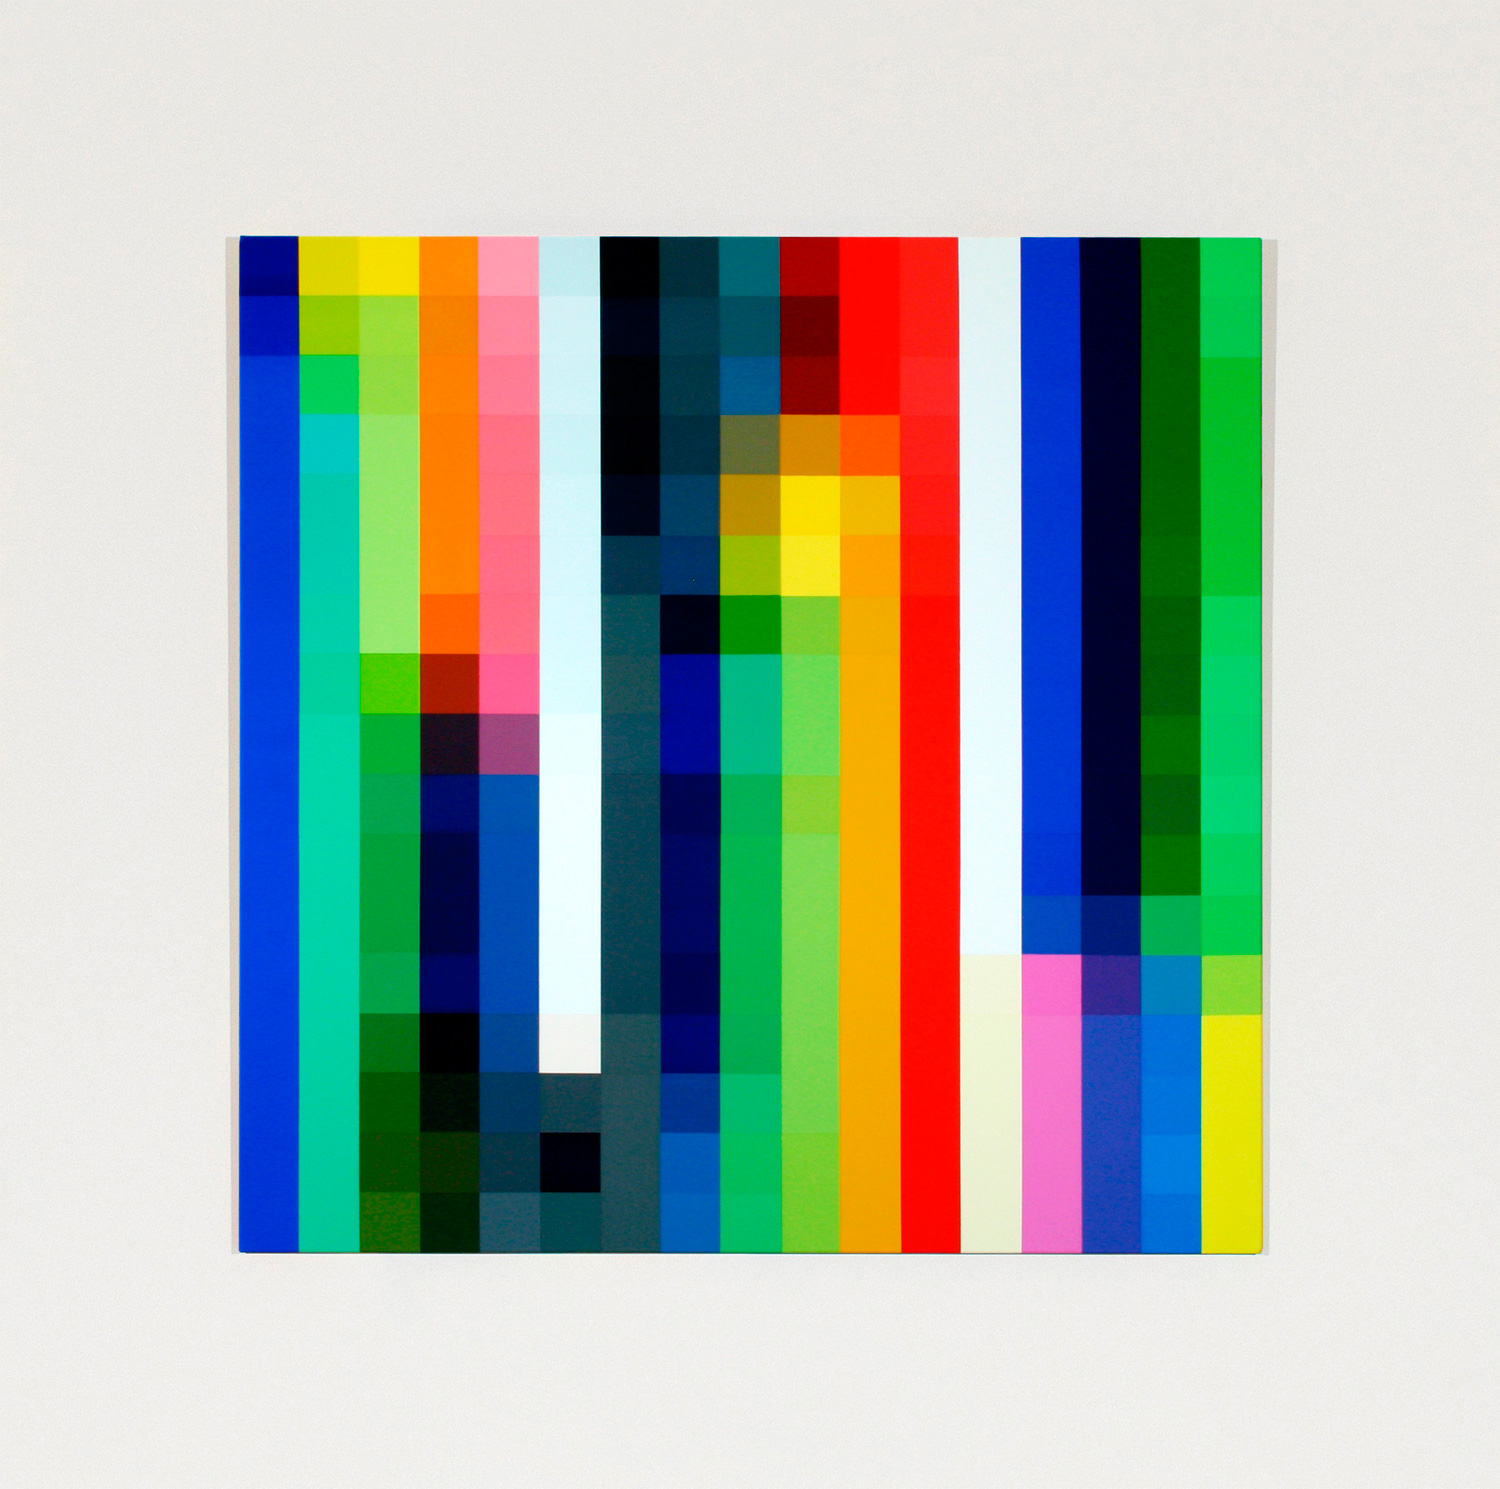 Spectrum Shift #5A  From the series  Text of Light, 2004 - 2005 Synthetic polymer paint on linen,122 x 122cm